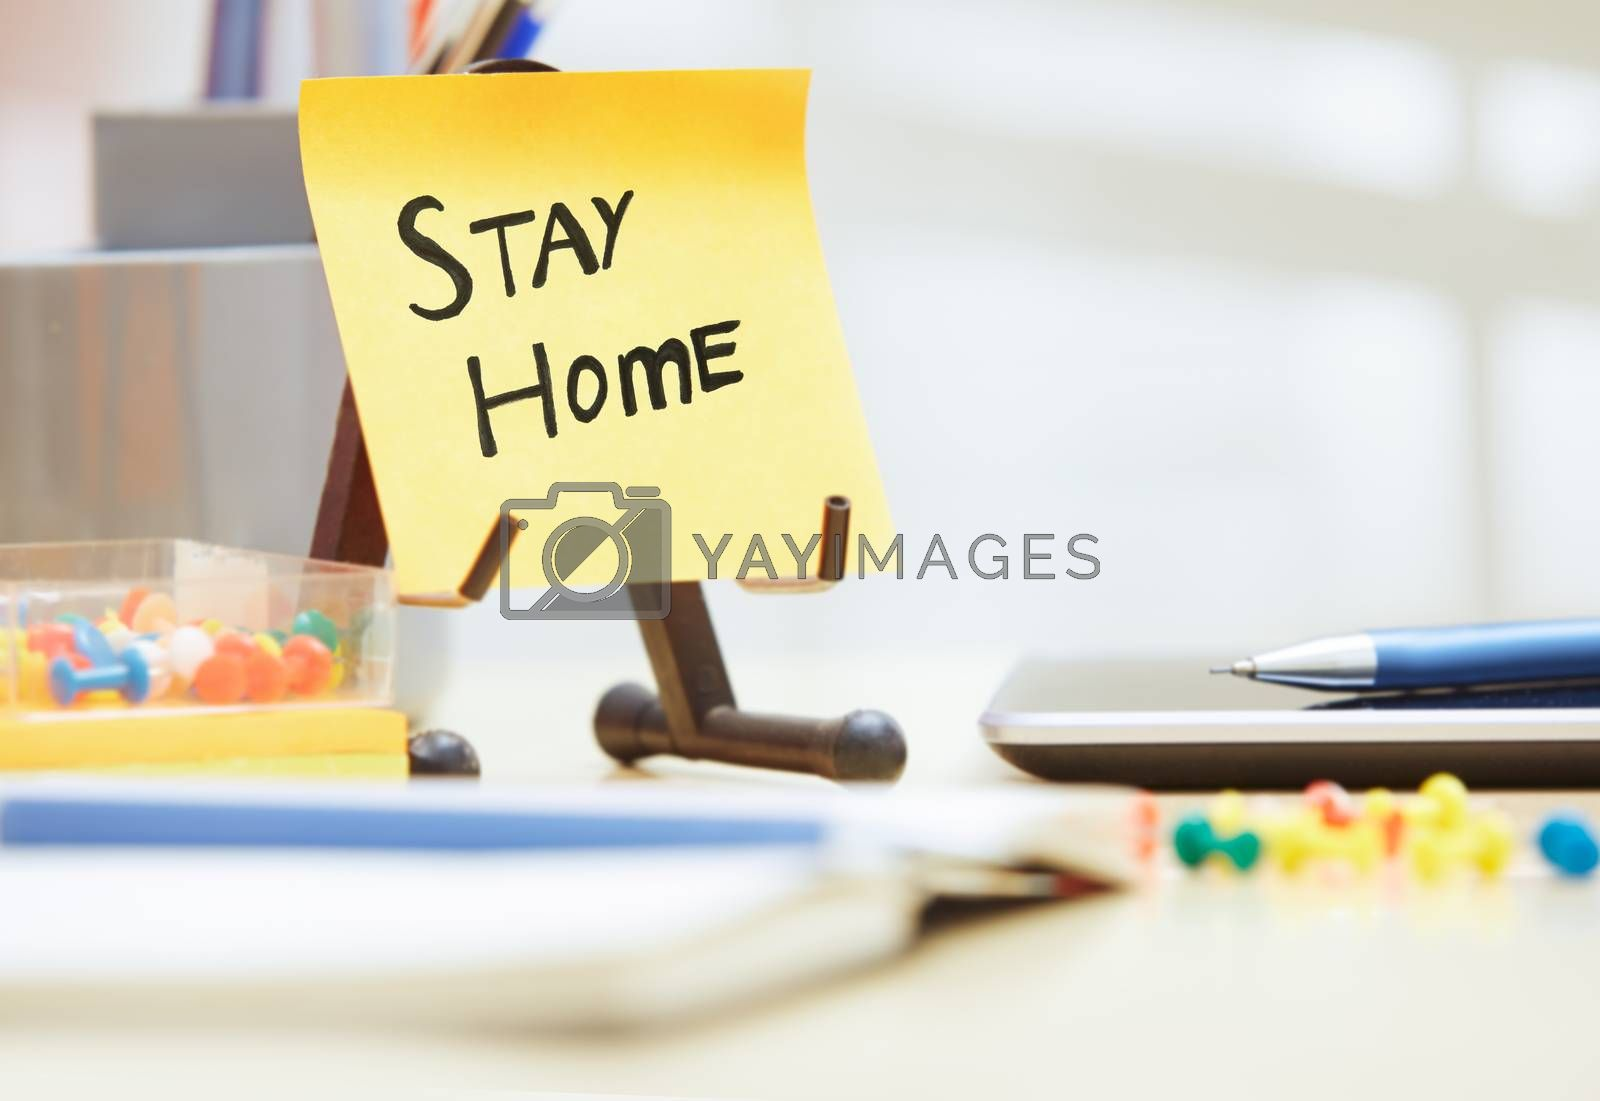 Stay Home text on adhesive note at the office